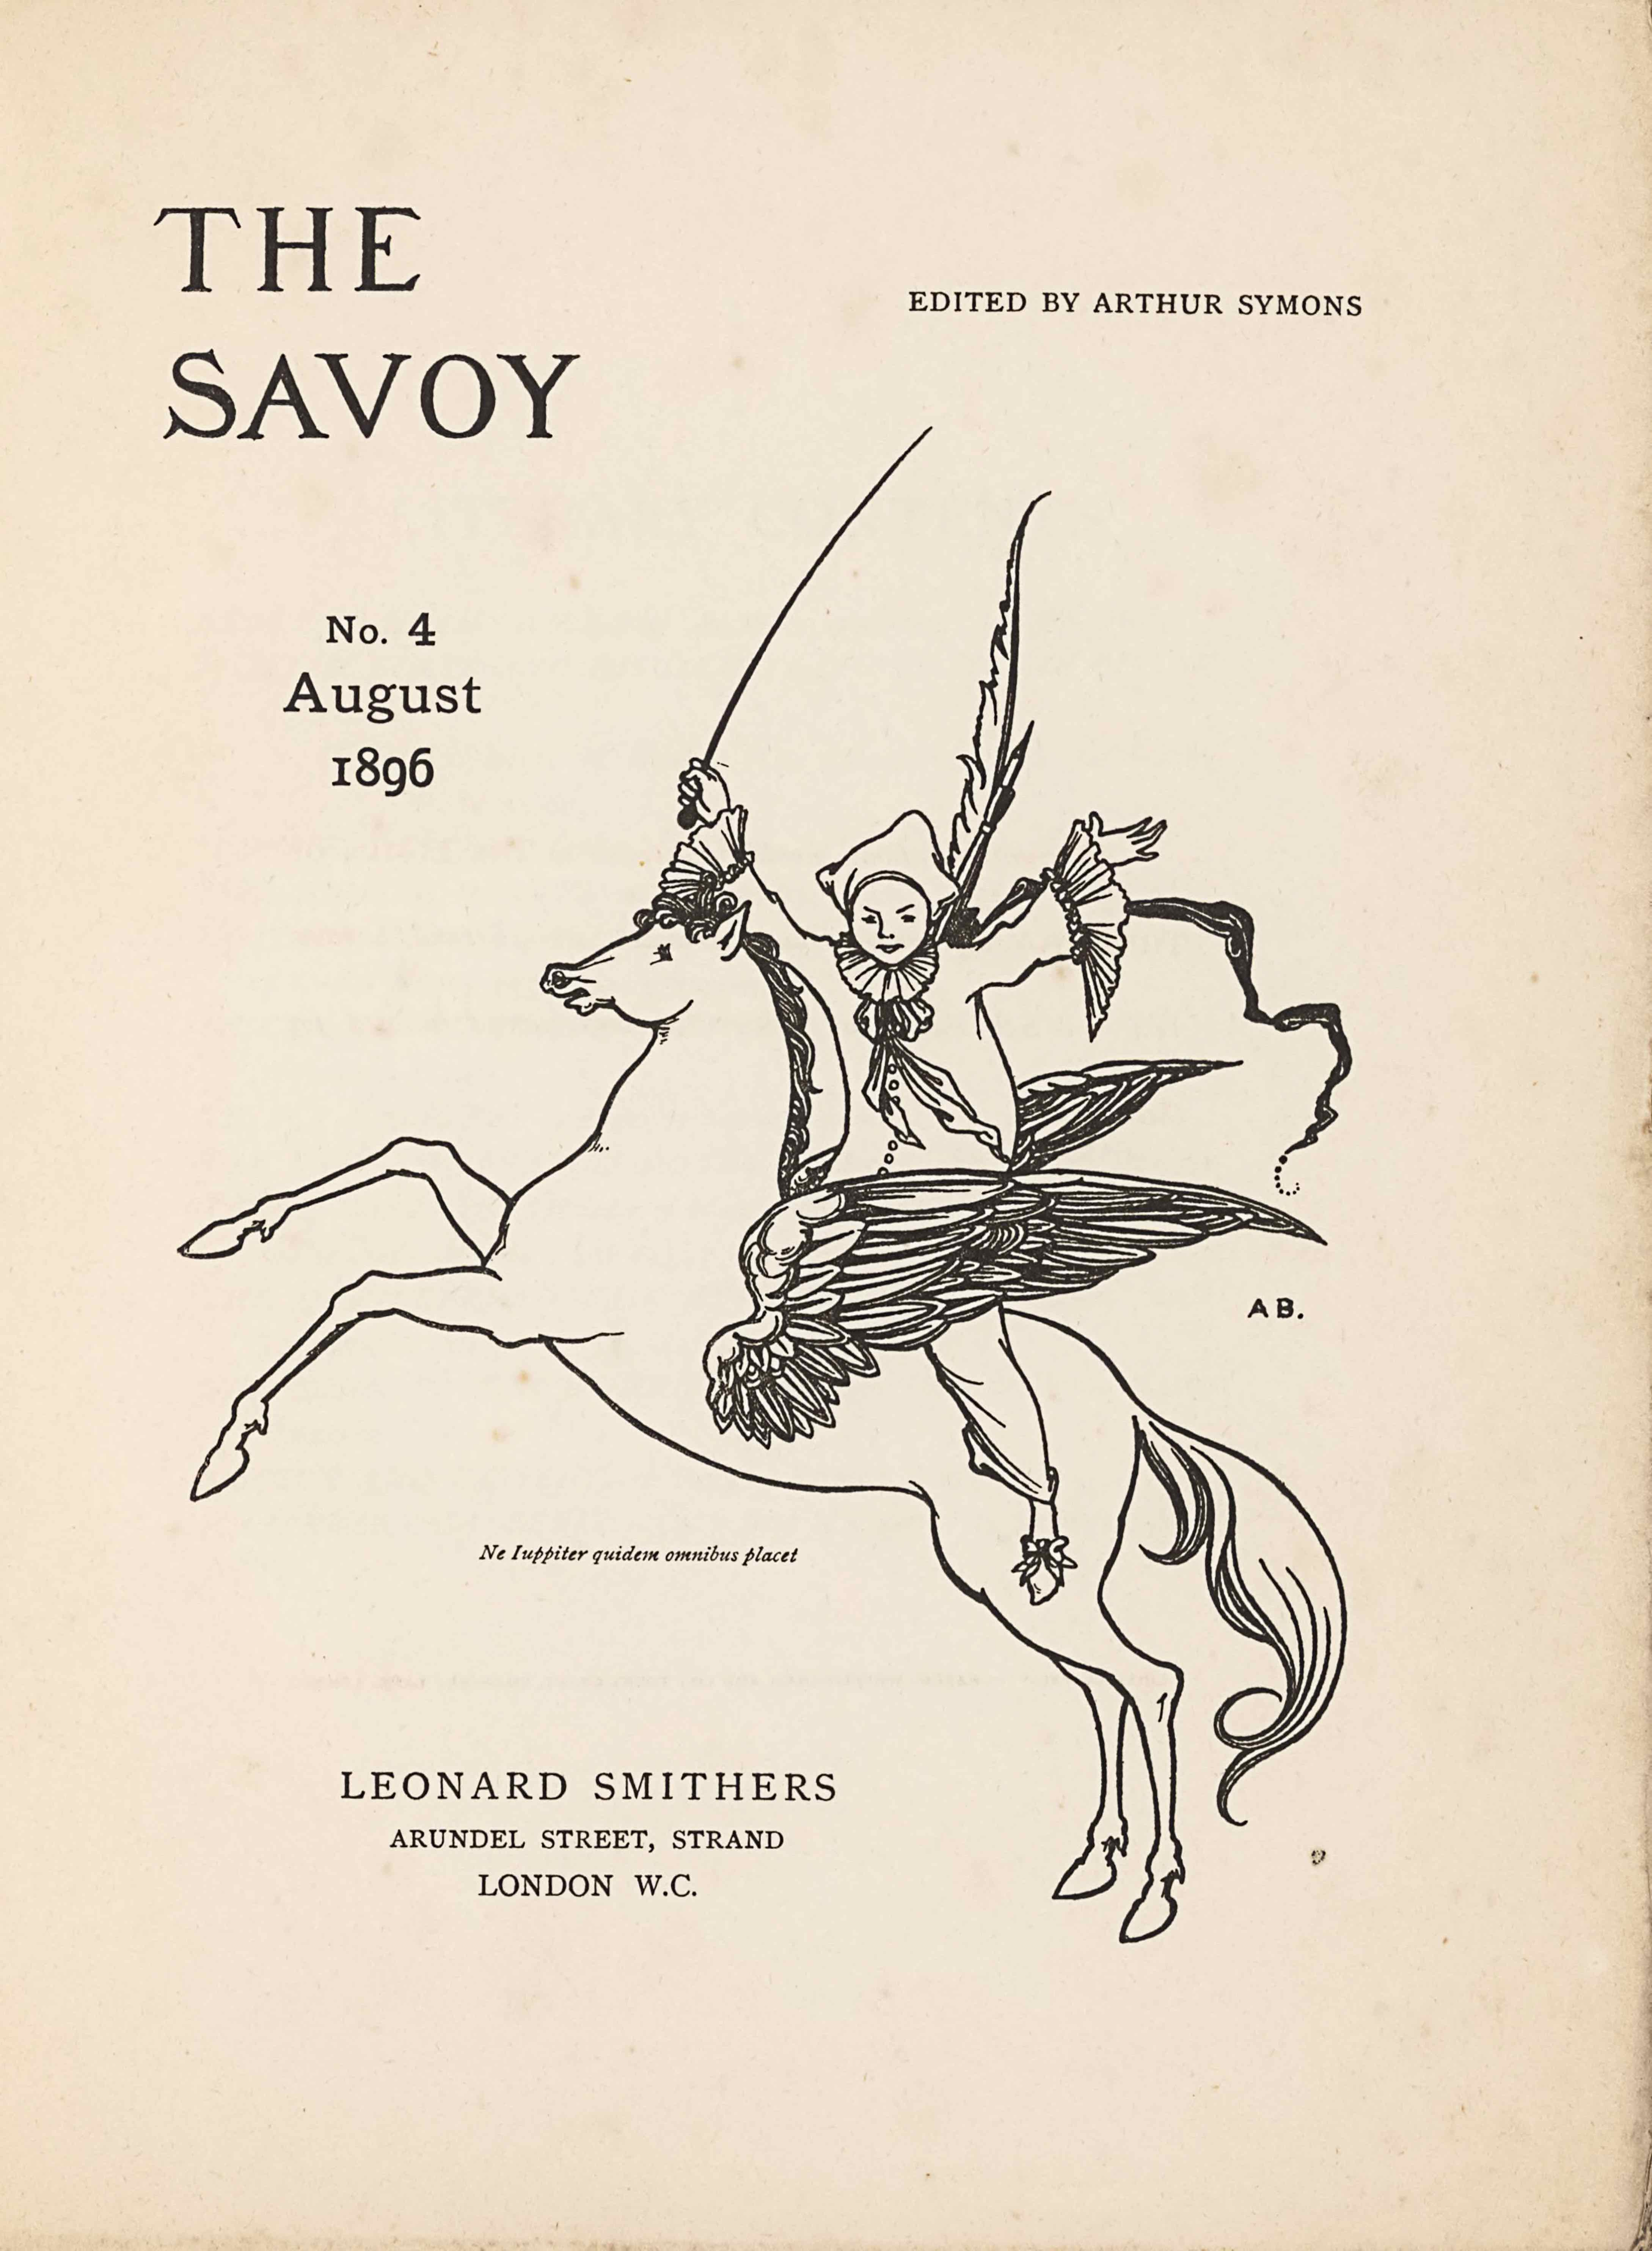 "The unframed title page, in portrait orientation, combines a line-block reproduction of a pen-and-ink design with letterpress. The image shows one figure [a Pierrot] riding a winged horse [a Pegasus] in the centre of the page with publishing information printed in the surrounding area. In the upper left corner is the text: ""THE"" [large caps] and one line below the text: ""SAVOY"" [large caps]. These two lines of text are left-aligned and indicate the title: ""THE SAVOY"" [caps]. To the right side of the page and appearing in line with the centre of the title text is the editing information: ""EDITED BY ARTHUR SYMONS"" [small caps]. Below the title on the left side of the page, still in about the top third, is the text: ""No. 3"", and below that the text: ""July"", and below that line: ""1896"". These three lines are centered with each other. To the right of this text is the image of the figure on the horse. The horse and figure are facing towards the left; the horse is in profile and the figure is turned to face the viewer. The horse is rearing, with both front legs lifted up into the air. The horse spans the width of the page and is about half of the page height. The horse has a long tail trailing behind. The horse's mouth is slightly opened and the pointed ears are pulled back. The mane is curled and a few pieces fall forwards toward the eyes. The horse has large wings emerging from the sides of its ribcage. The wings are made up of many feathers of various sizes and are formed like eagle wings, with a smaller section on the bottom half and a larger pointed portion of wing on the top half. Between the wings sits a male figure dressed like a Pierrot or clown. The figure has his upper body turned to face the viewer, with both arms opened wide and lifted up into the air. He is wearing slippers with a bow on the toe, baggy pants that fall just above the ankle, and a baggy shirt that has buttons up the front. The shirt has large ruffles on the sleeve hems and a large ruffle around the figure's neck, finished with a ruff and flowing, loosely tied bow. He is wearing a white three-cornered hat. The figure has a long whip in his right hand that extends high above him. A feather pen and paint brush extend over his shoulder behind his back, and a banner or pennant flows behind him. To the right of the centre of the horse and figure, just below the right wing tip, is the small text: ""A B."" [caps]. A Latin epigraph appears just below the belly of the horse, very small and italicized, which reads: ""Ne luppiter quidem omnibus placet"" [Not even Jupiter can please everyone]. Centered below are the three final lines of text. The first line, and largest sized text of the three, reads: ""LEONARD SMITHERS"" [caps]. The second line reads: ""ARUNDEL STREET, STRAND"" [caps]. The third and final line centered below is the mid-size between the above two lines, and it reads: ""LONDON W.C."" [caps]."